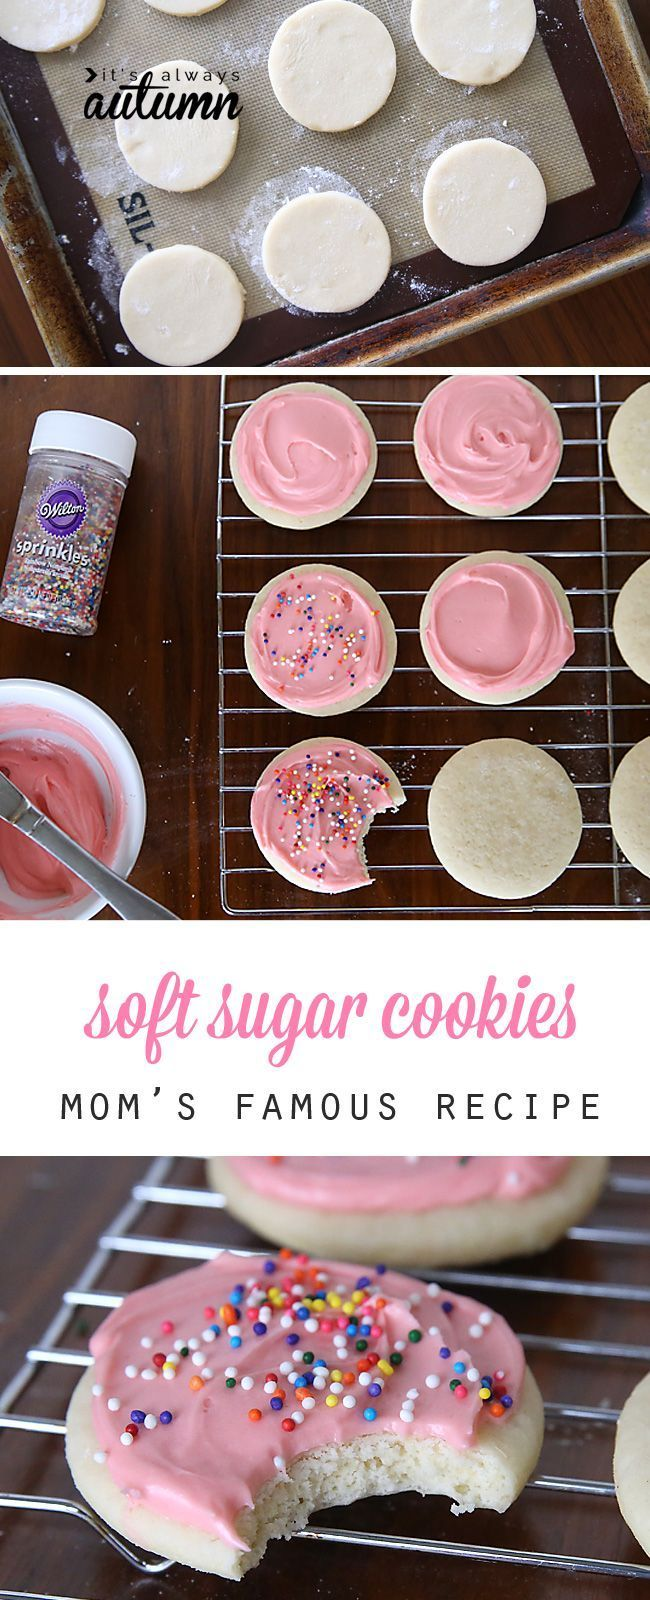 This is, hands down, the best soft sugar cookie recipe, complete with amazing cr... -  Calculating Infinity -